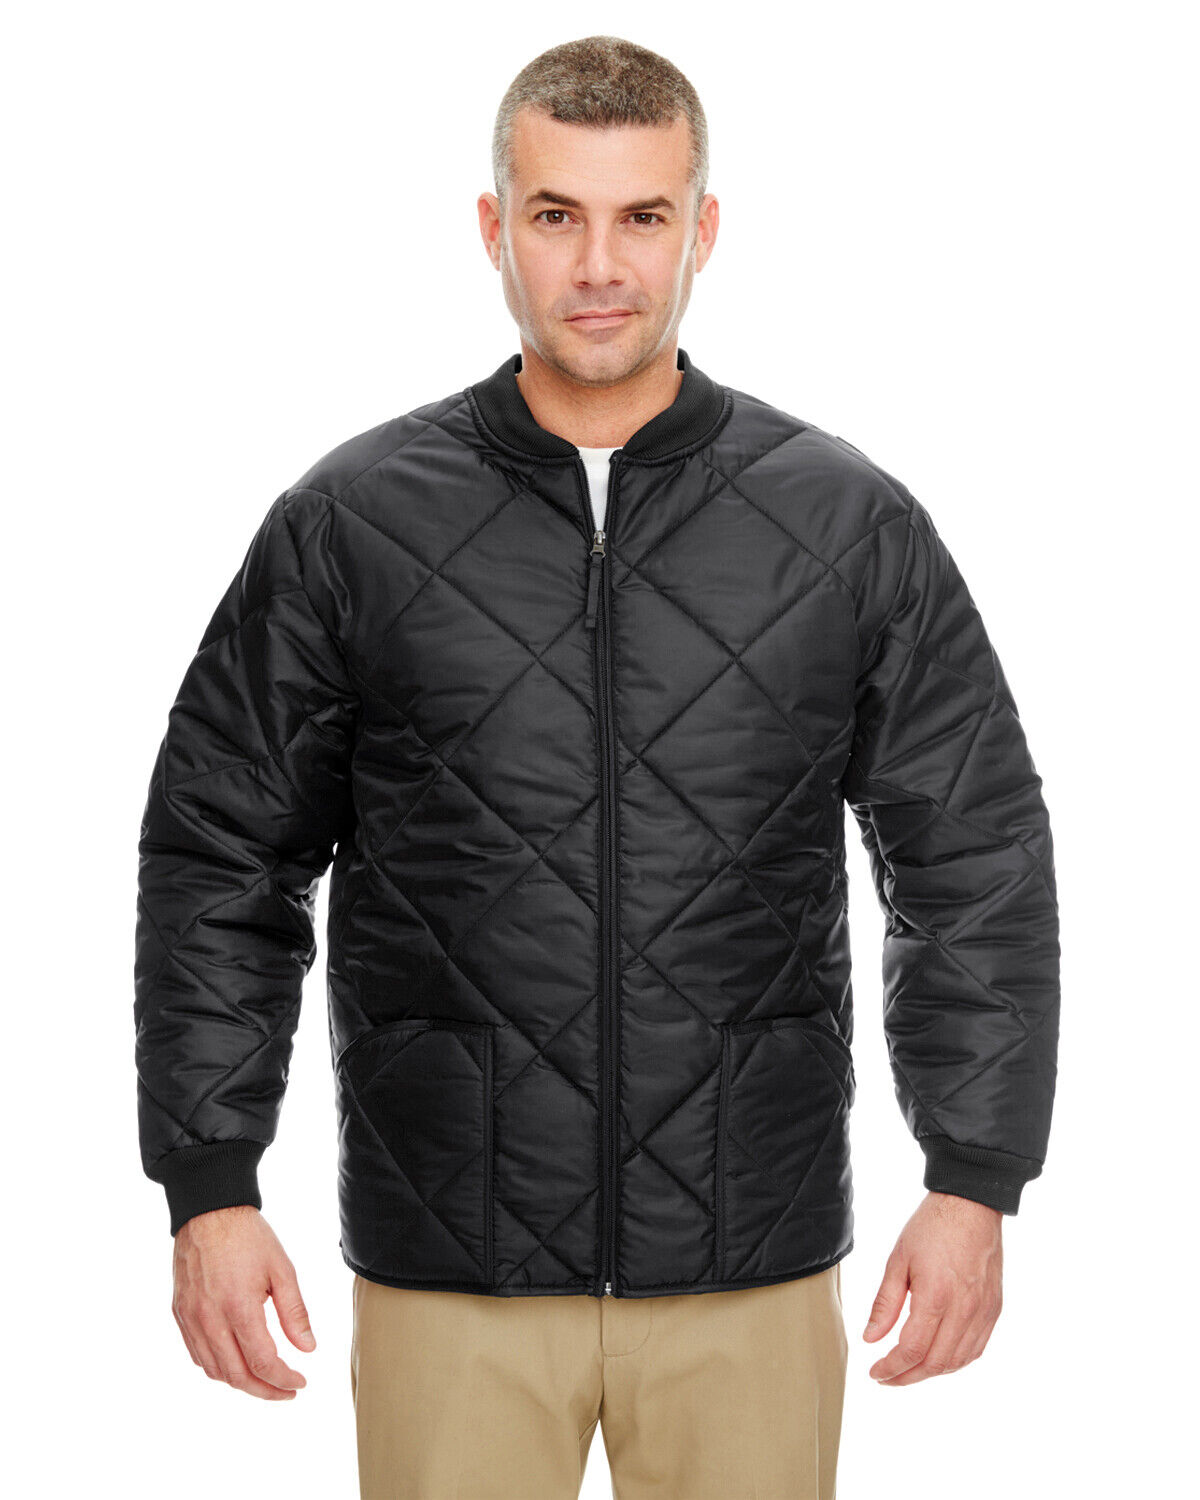 UltraClub Puffy Workwear Jacket with Quilted Lining black coat Clothing, Shoes & Accessories